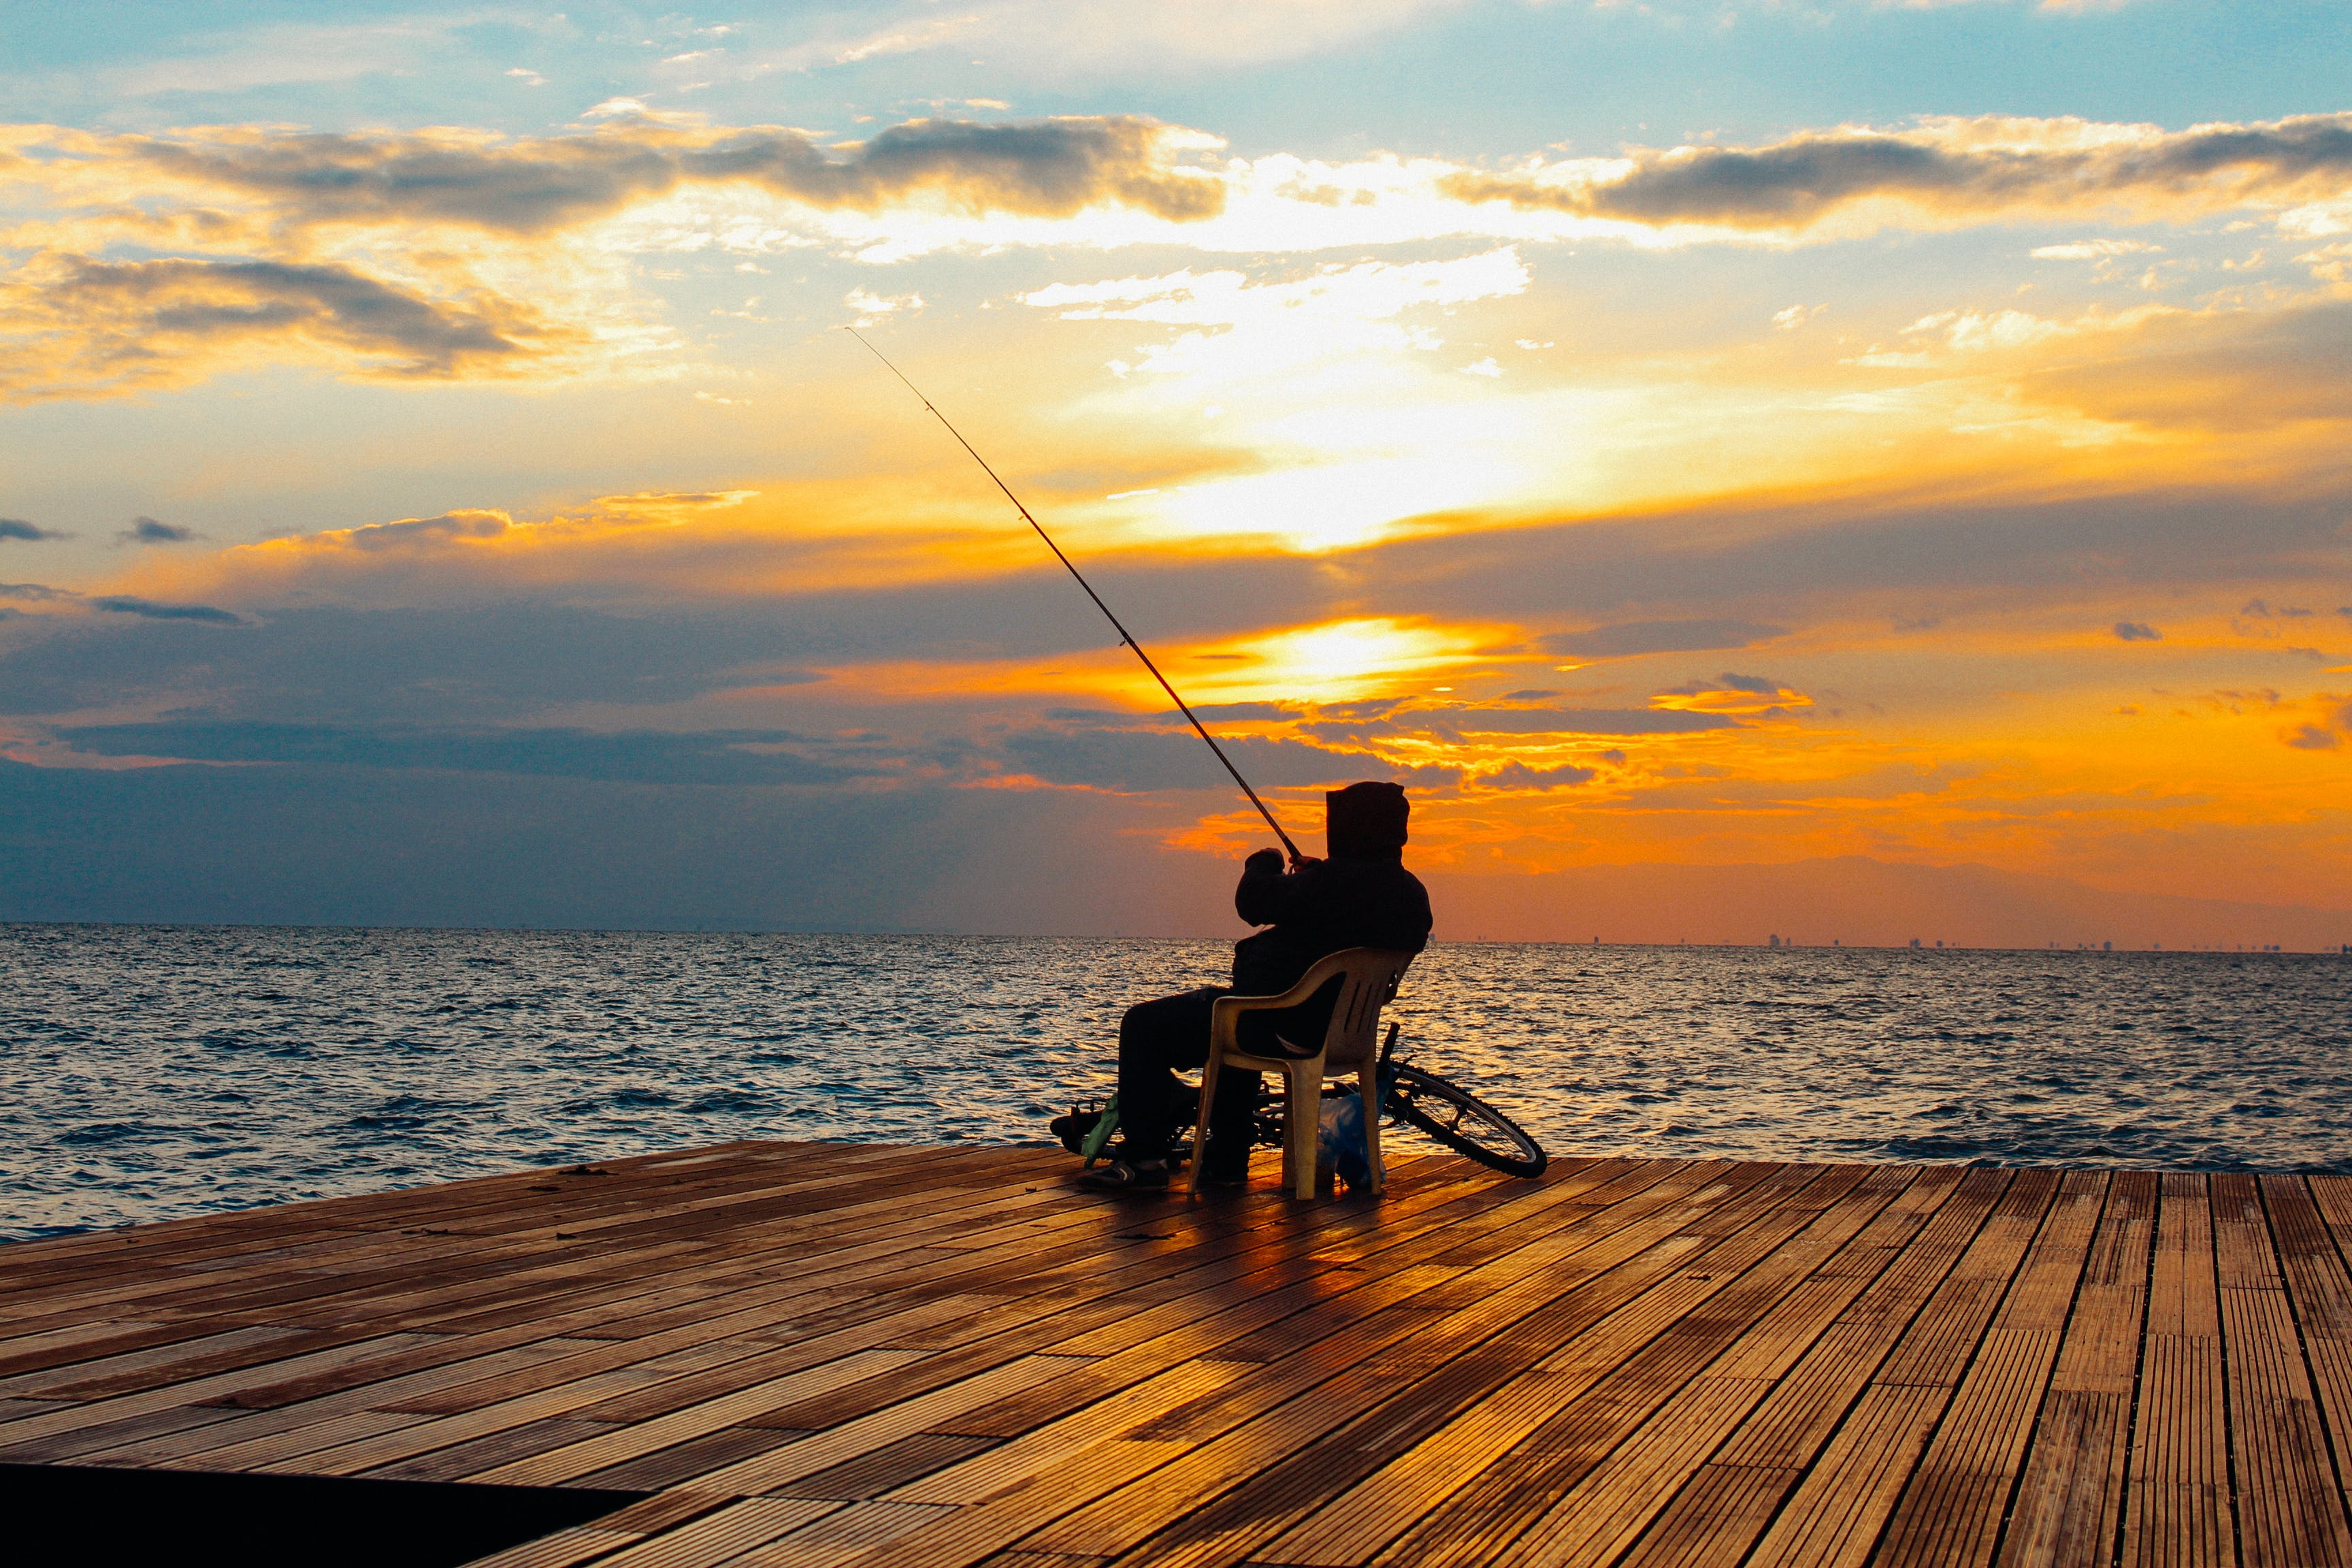 Silhouette of Person Sitting on Chair Holding Fishing Rod Near Body of Water during Golden Hour